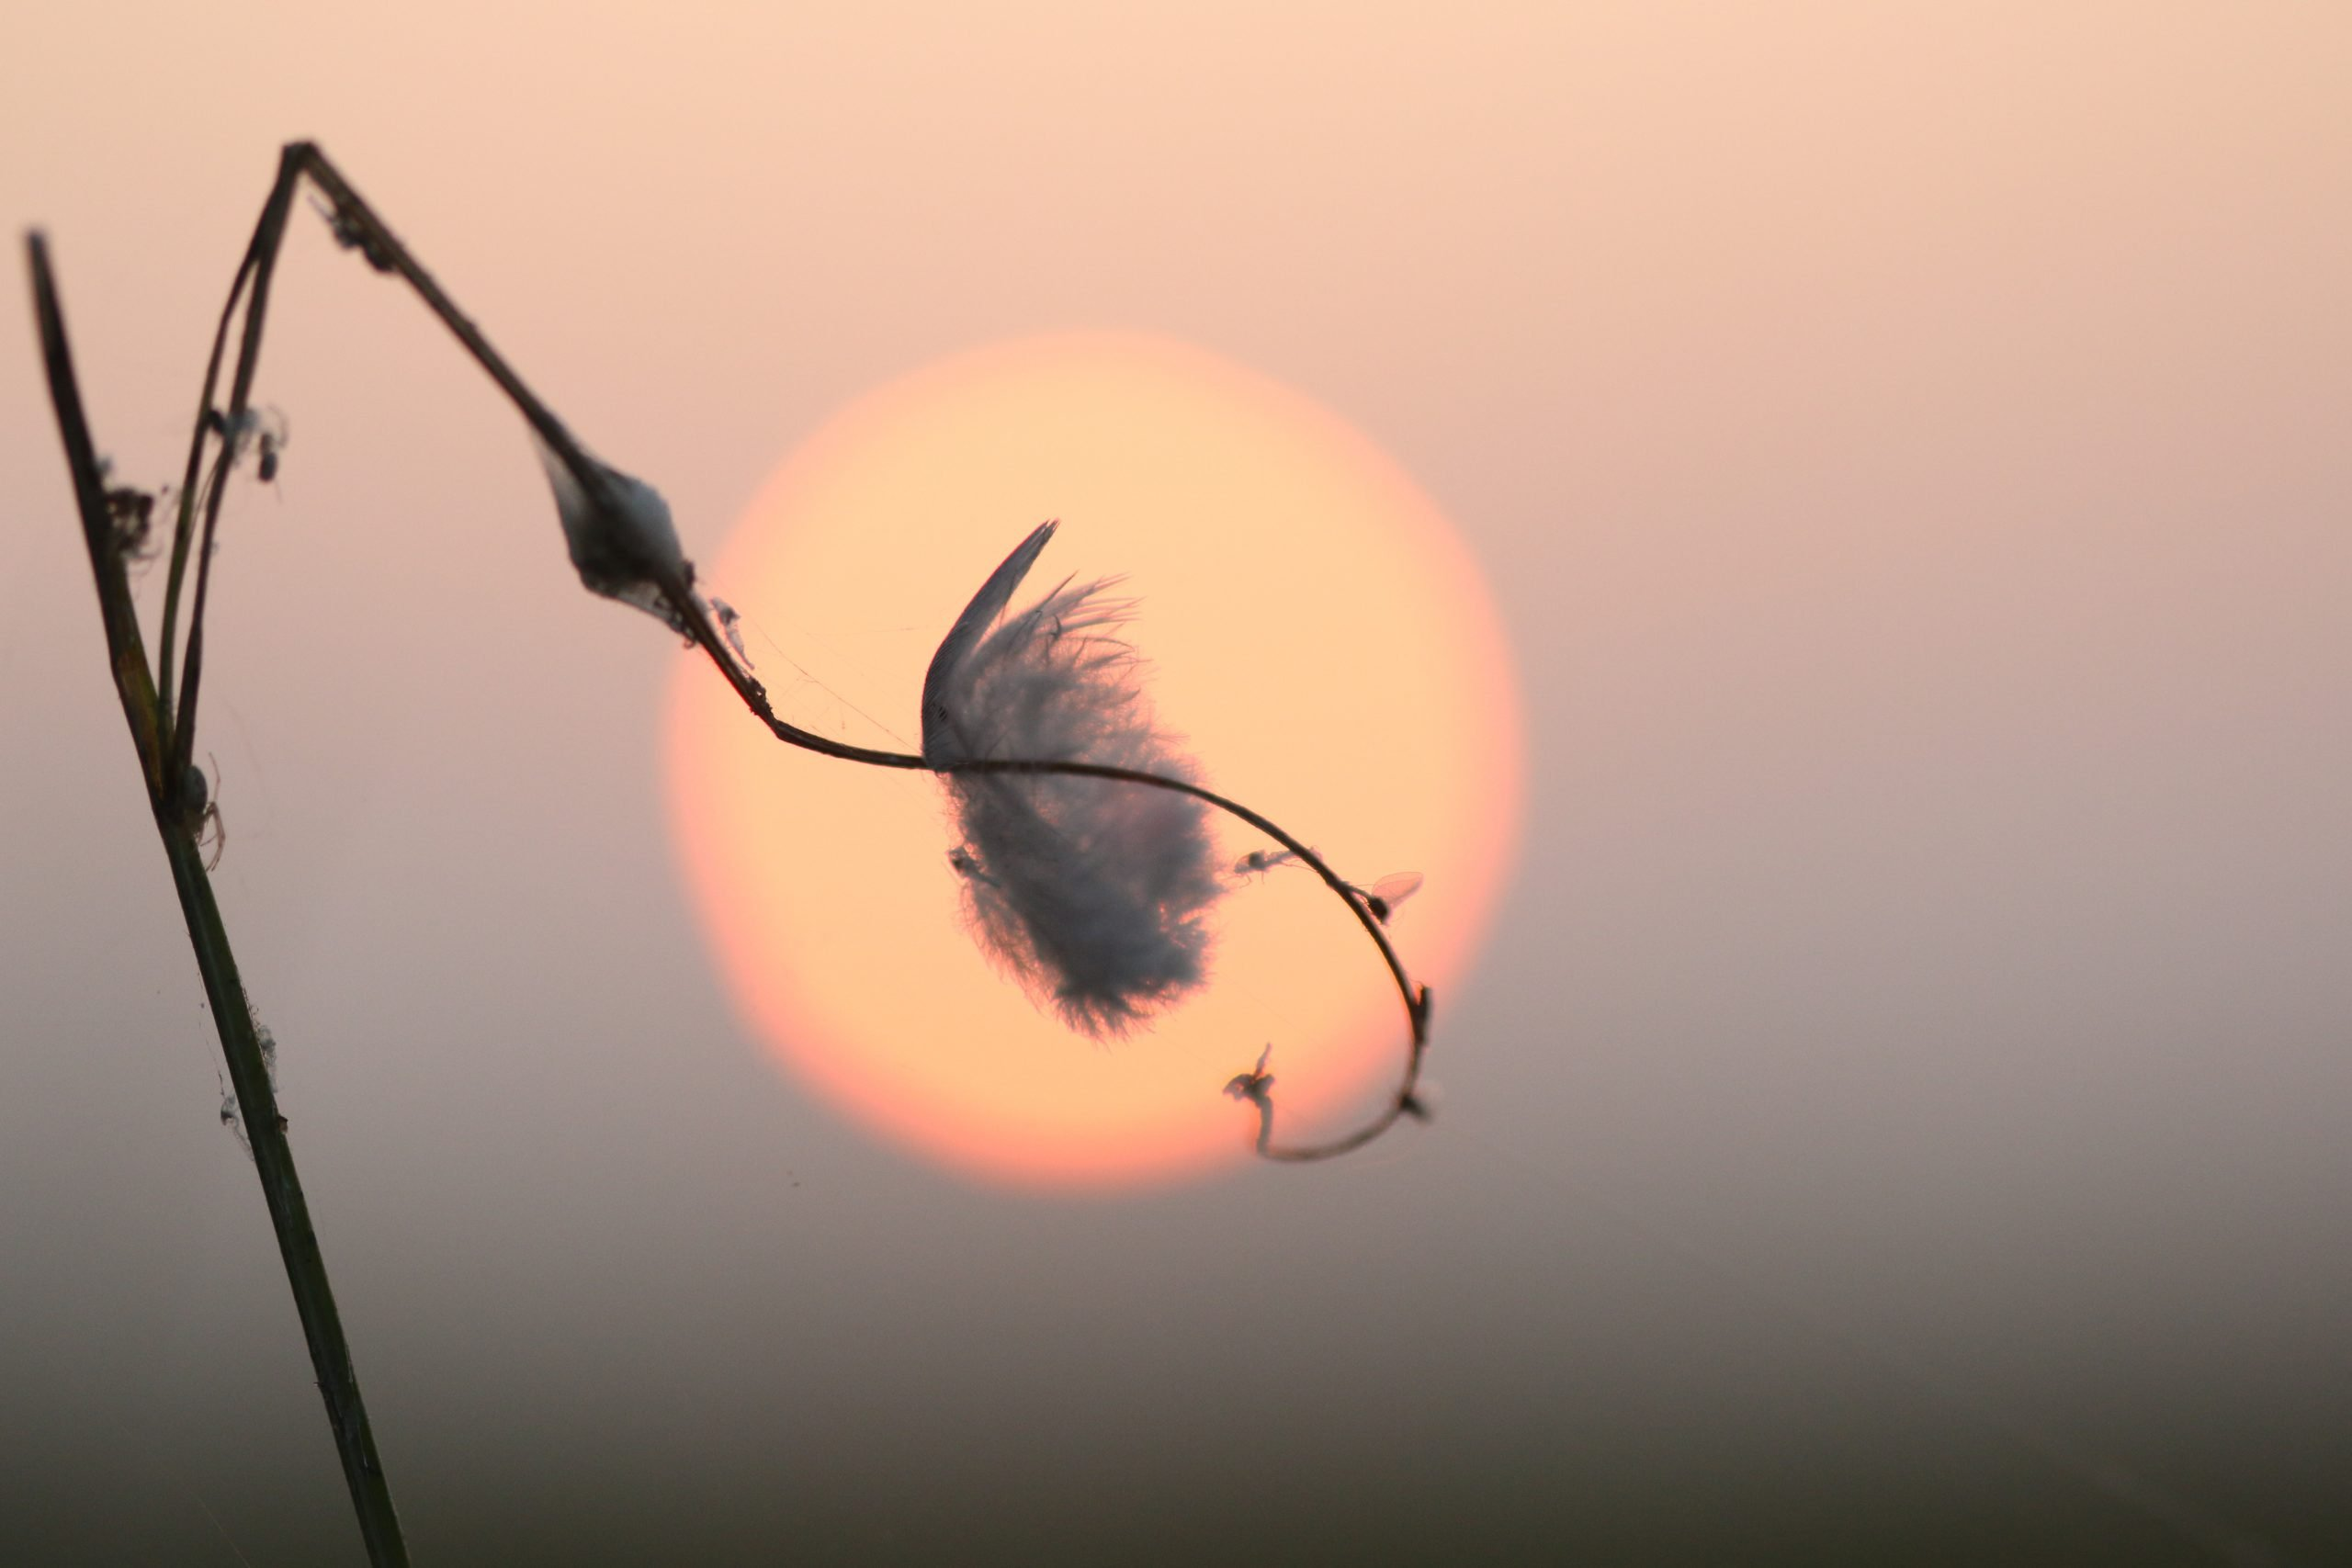 Solar eclipse by a feather.